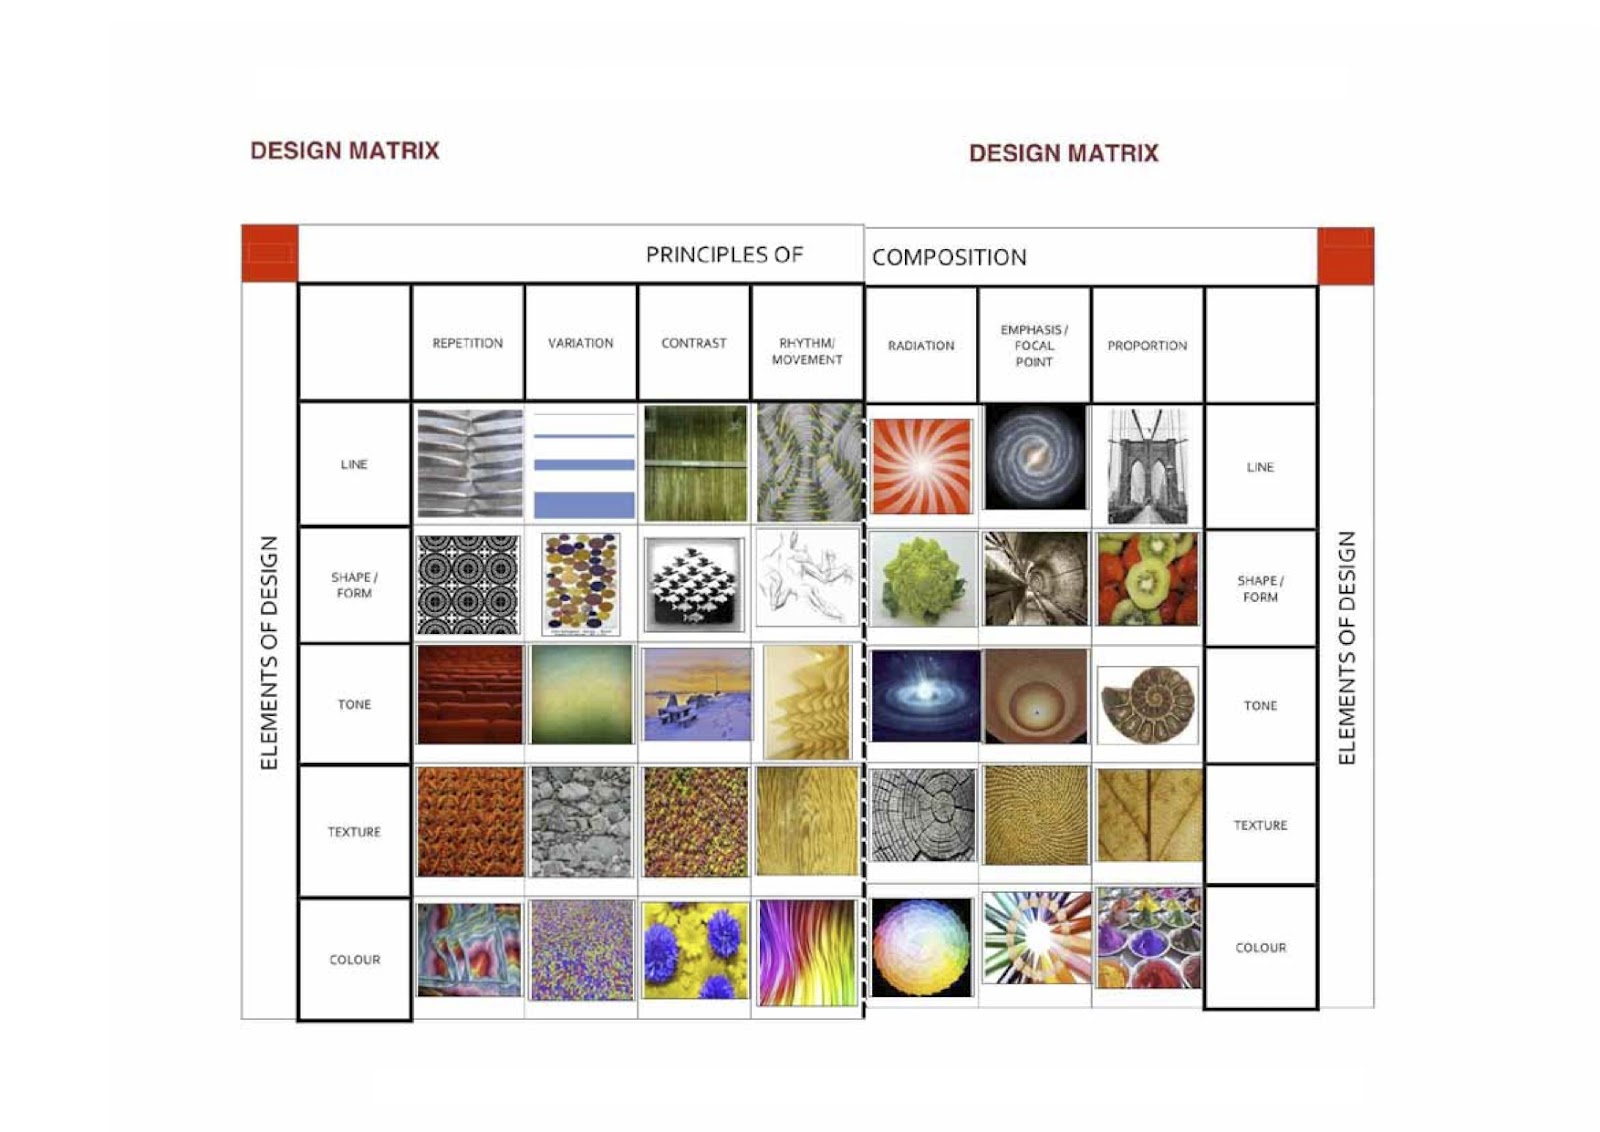 14 Pltw Elements And Principles Design Matrix Images Art Elements And Principles Of Design